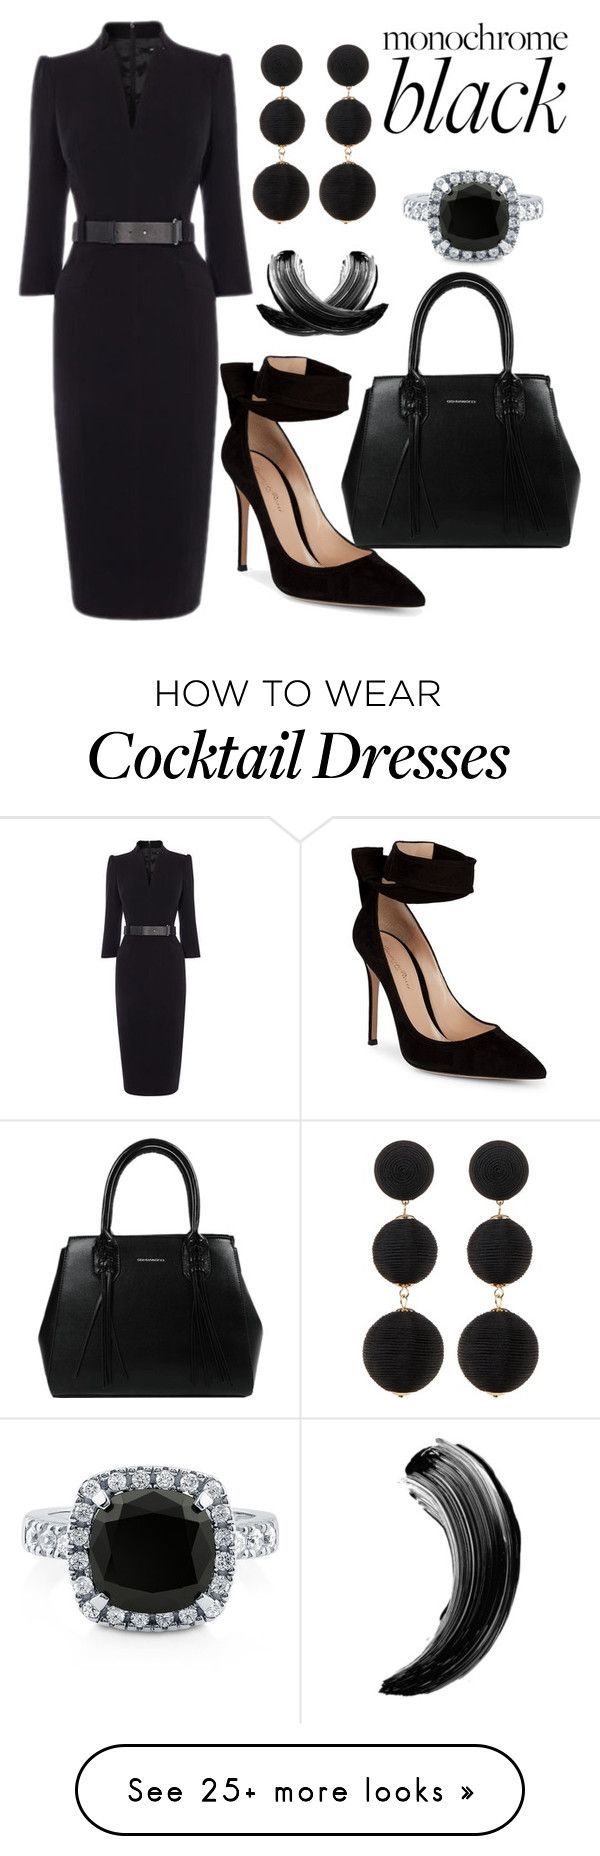 """""""Monochrome Black"""" by ghostgypsy on Polyvore featuring Gianvito Rossi, Cara, BERRICLE and allblackoutfit"""